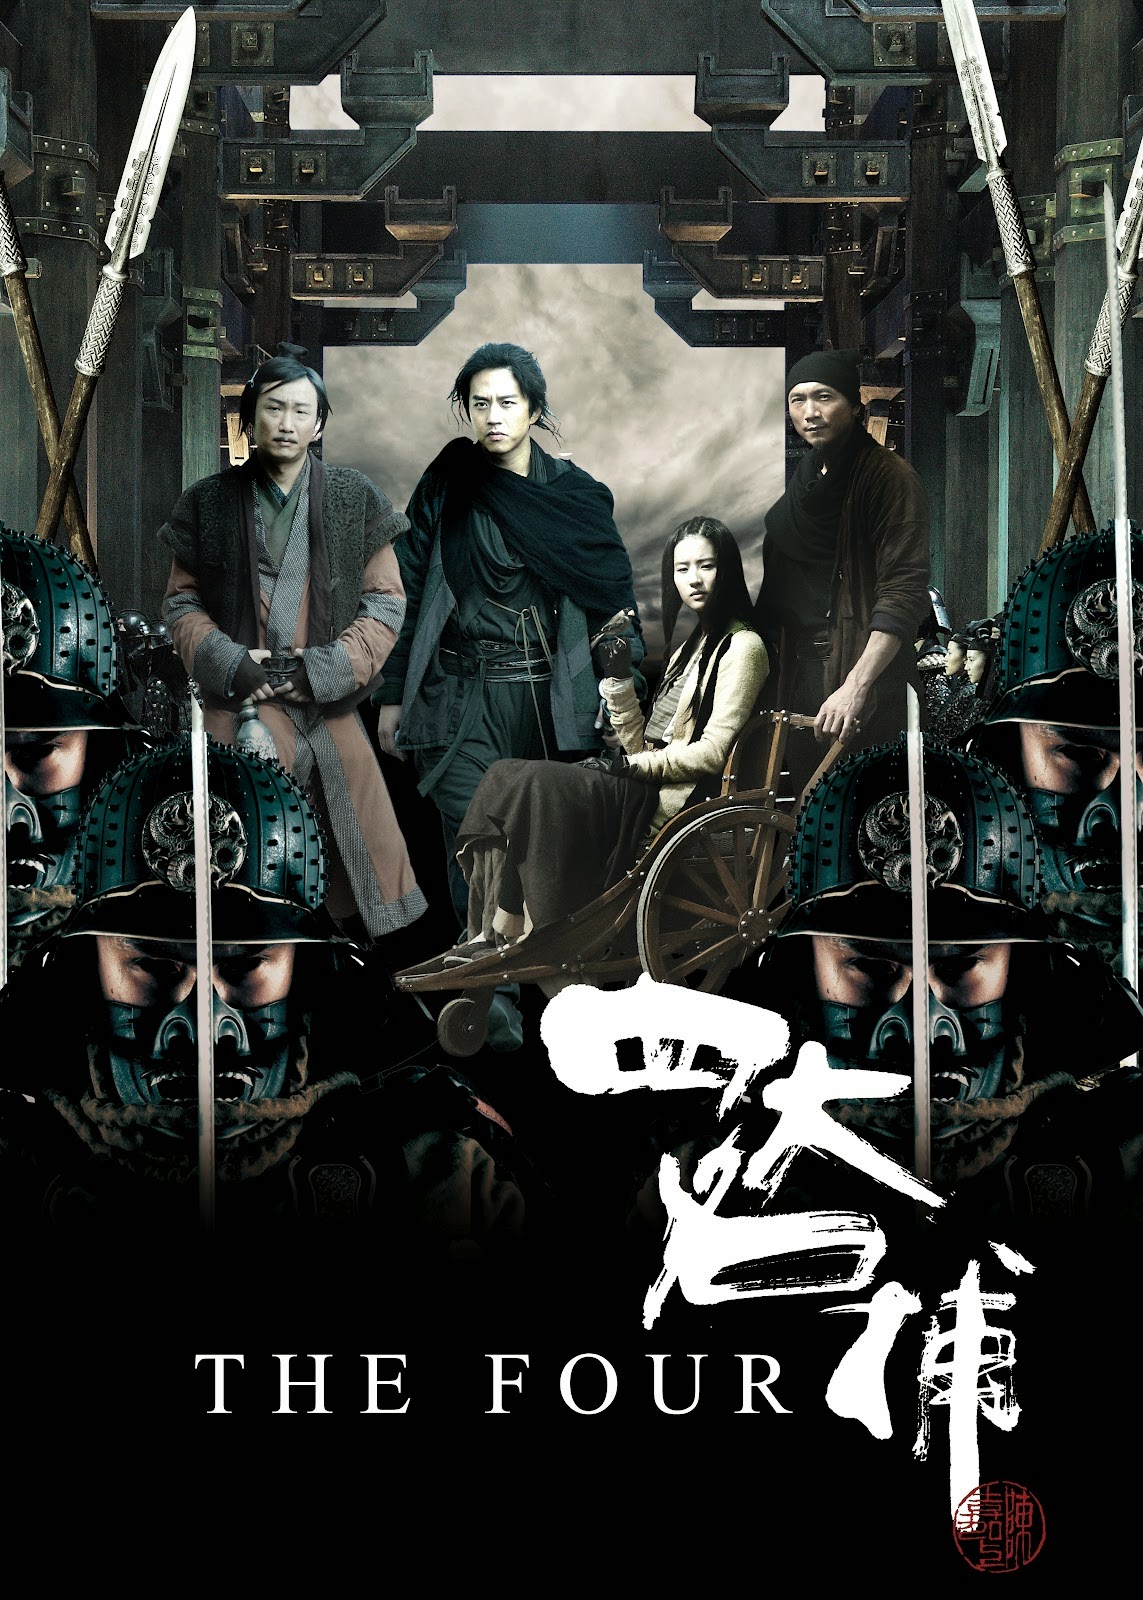 The Four 2012 (film)